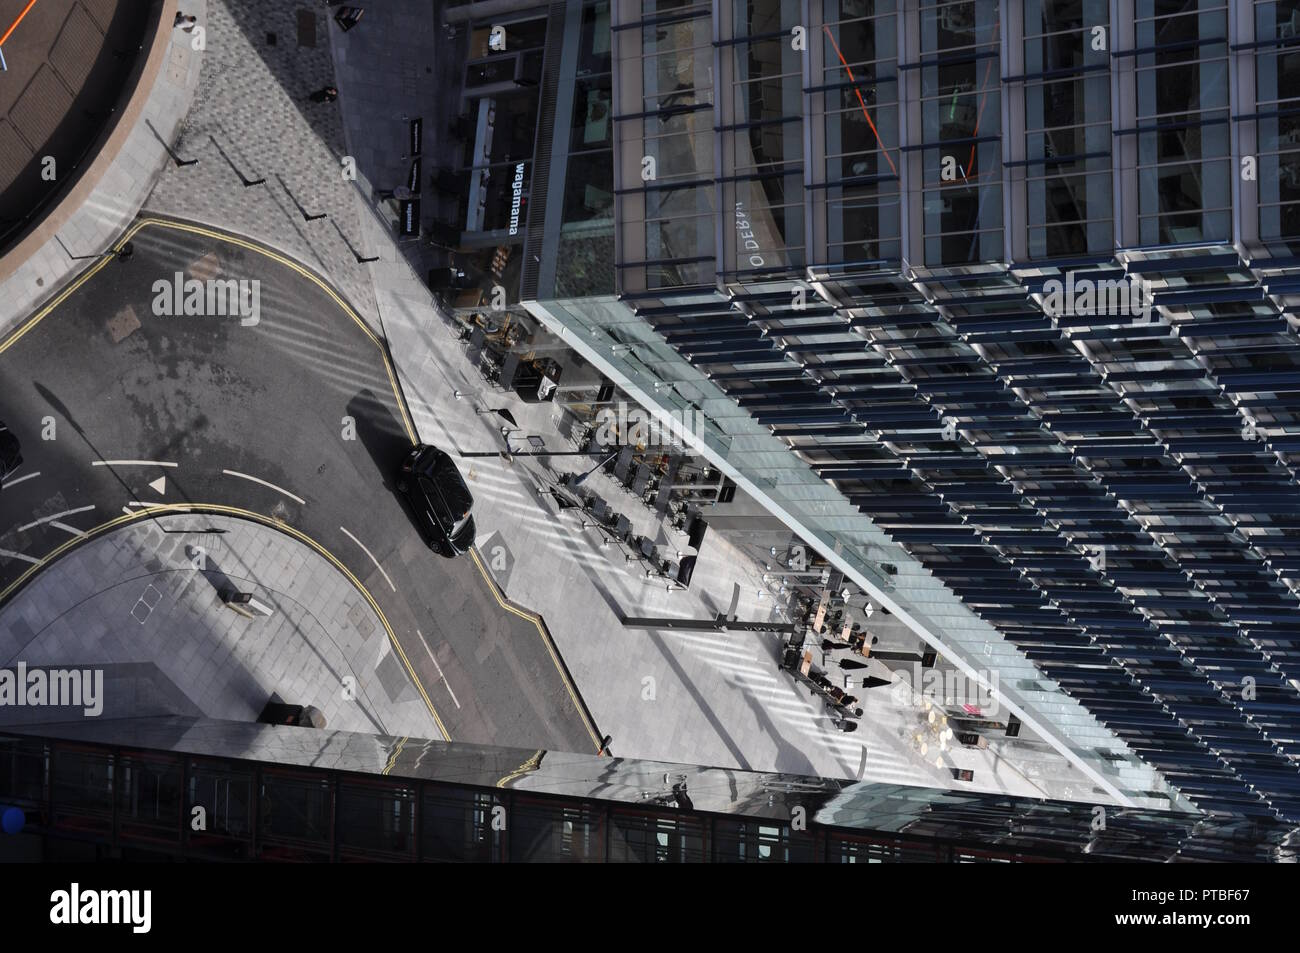 London, UK. Oct, 2018: View from tenth floor Blavatnik Building, looking down at streets below, street scenes, aerial view. Credit: Katherine Da Silva - Stock Image